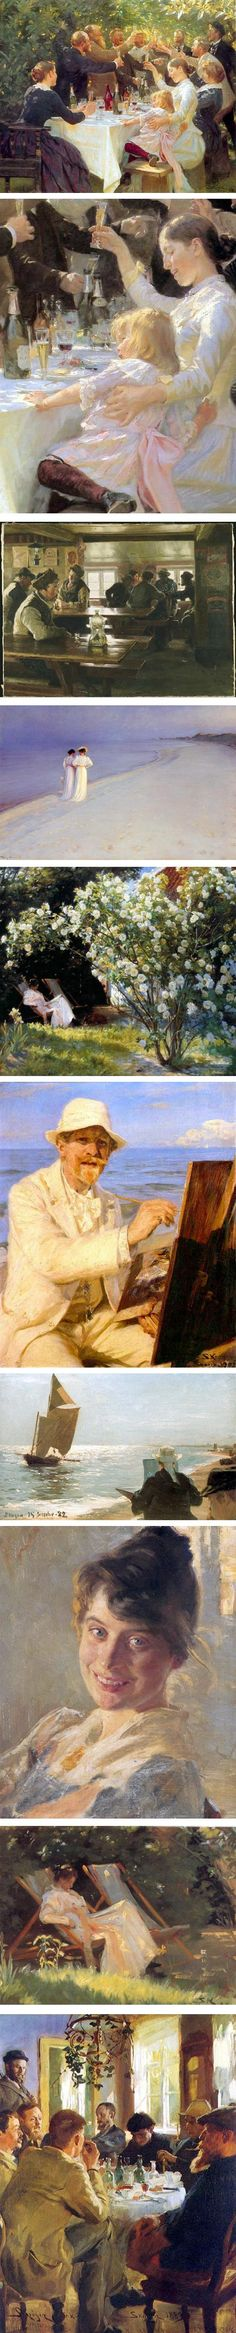 """Peder Severin Kroyer. According to Charley Parker, of linesandcolors.com """"He studied at the Royal Danish Academy of Art, traveled Europe and studied in Paris, where he was introduced to the work of the French Impressionists, an influence that resonates in his open, painterly, color-filled later work."""" Just gorgeous!"""